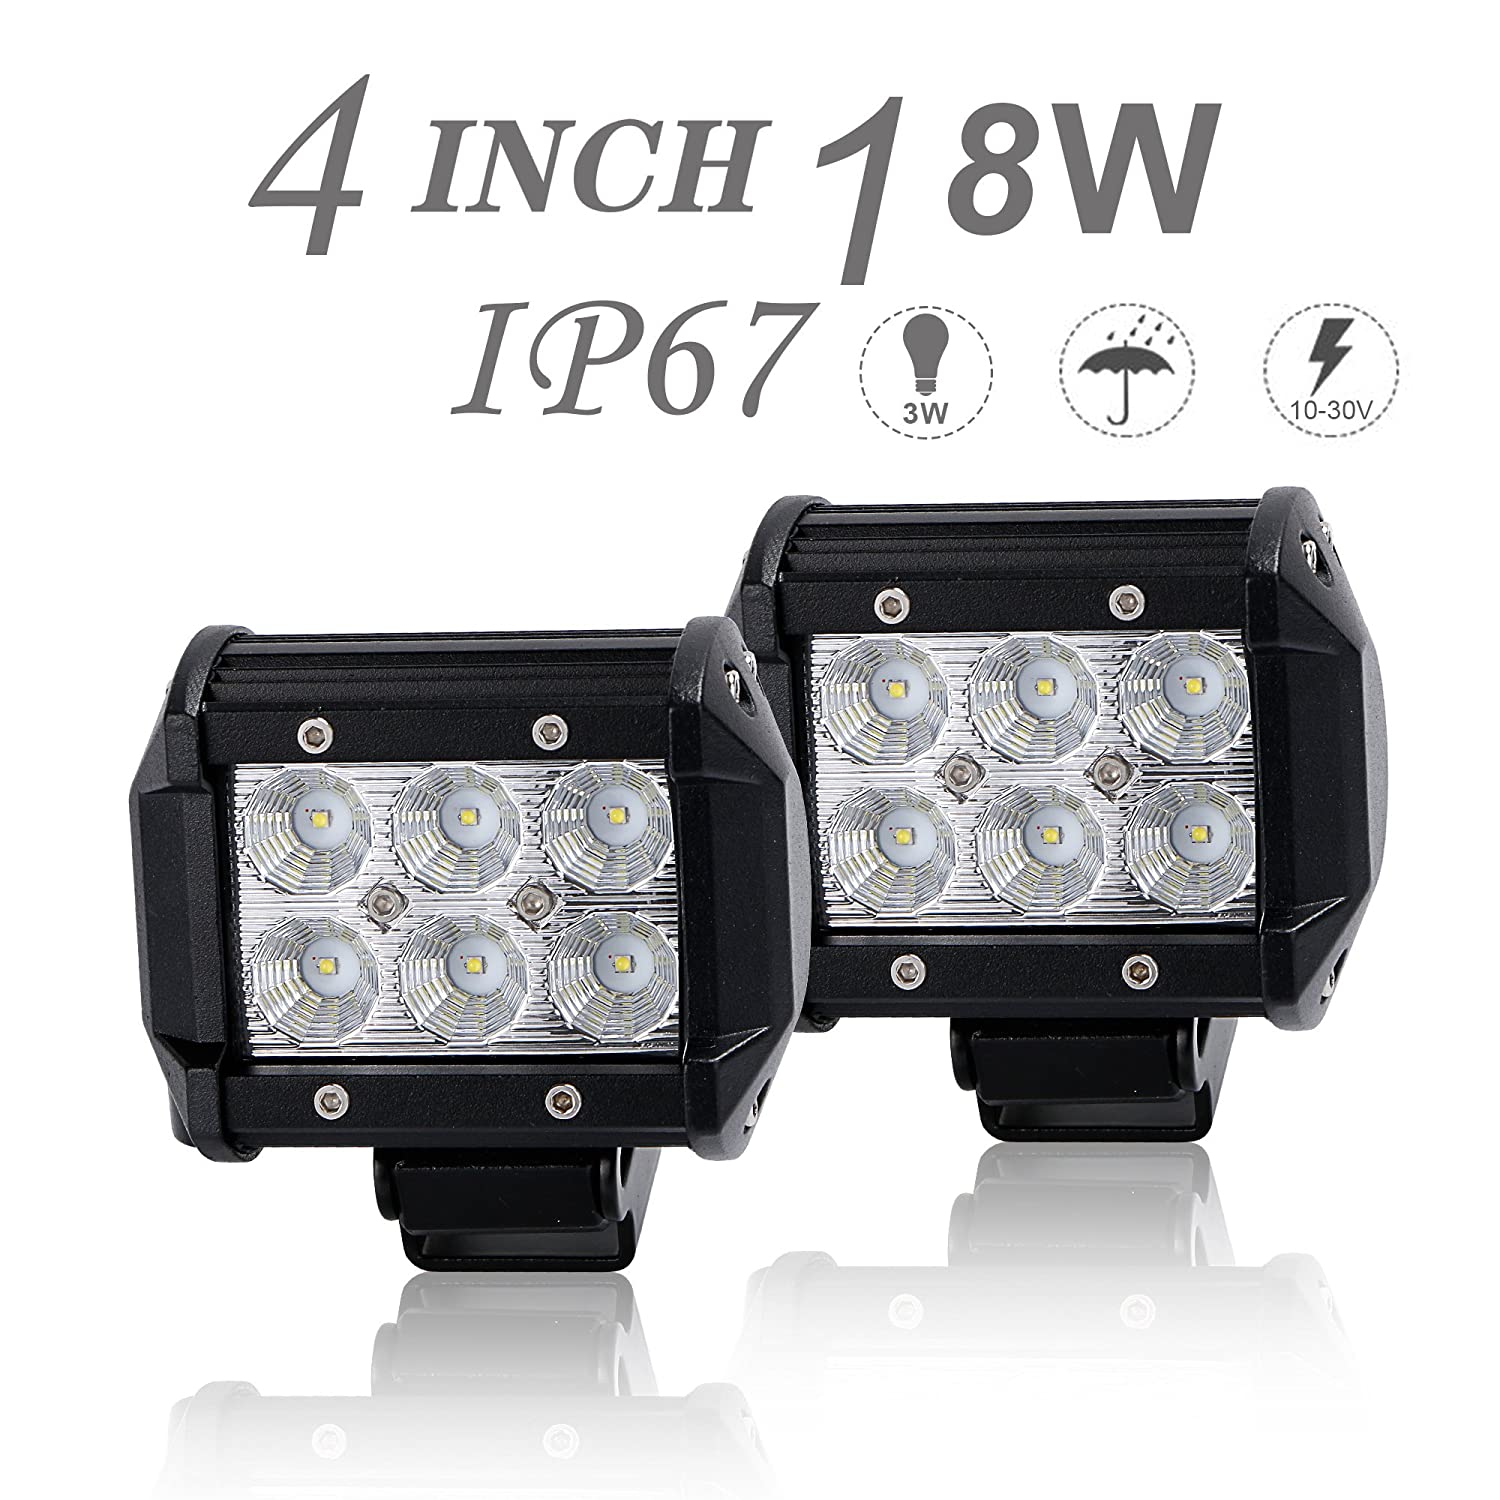 DOT Approved 2Pcs 4Inch 18W Flood LED Light Bar Offroad Pods Lights 4wd LED Driving Lamp Work Light Bulb Fog Lights Backup Reverse Lights for Truck Pickup Jeep SUV ATV UTV Tractor Boat Waterproof IP67 12V/24V Uni Filter